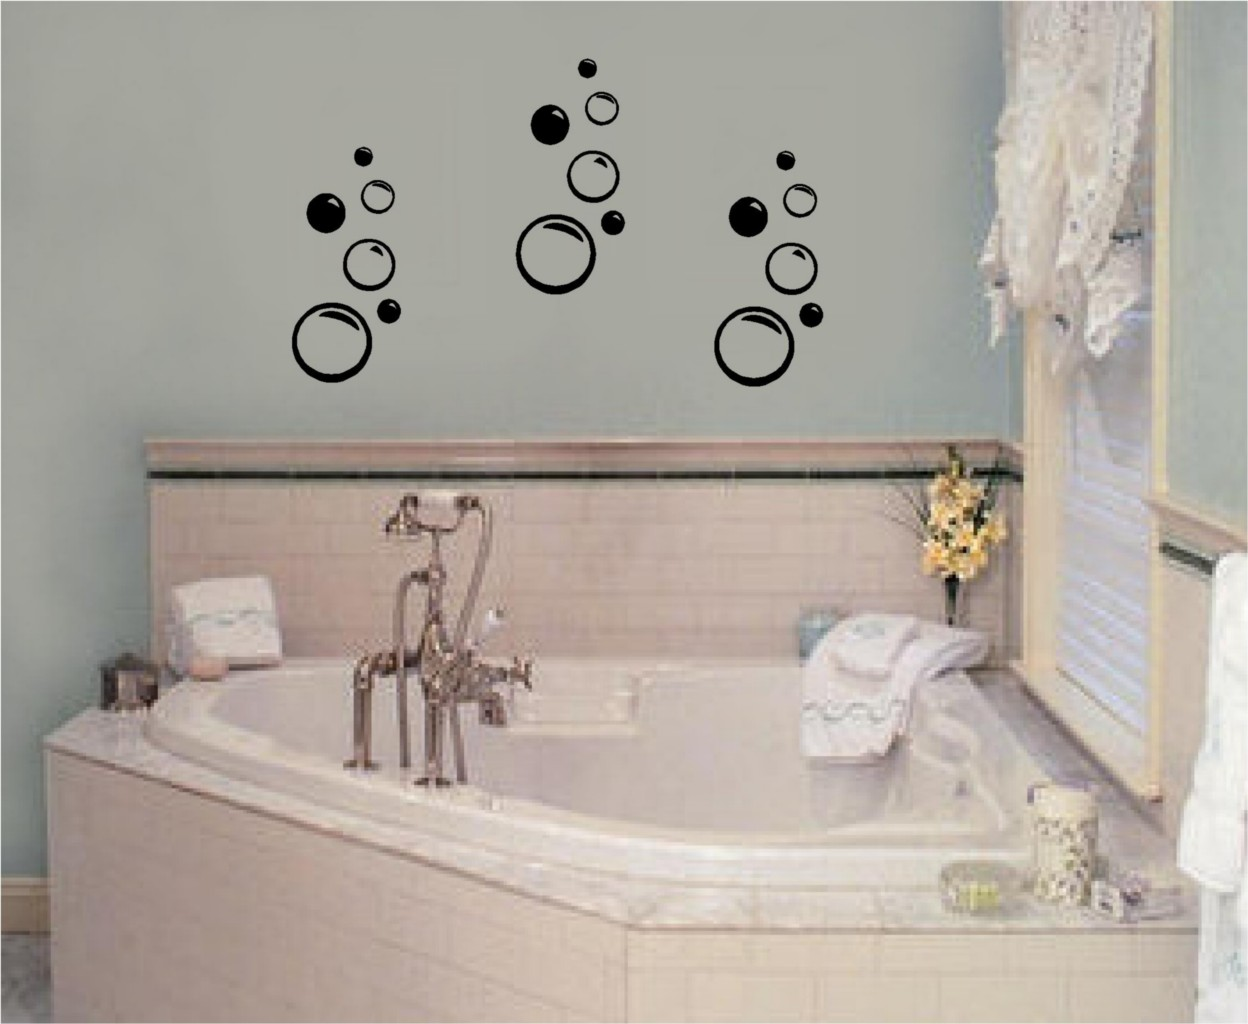 Bathroom Wall Art Bubbles : Bubbles vinyl wall decal stickers decor bathroom art